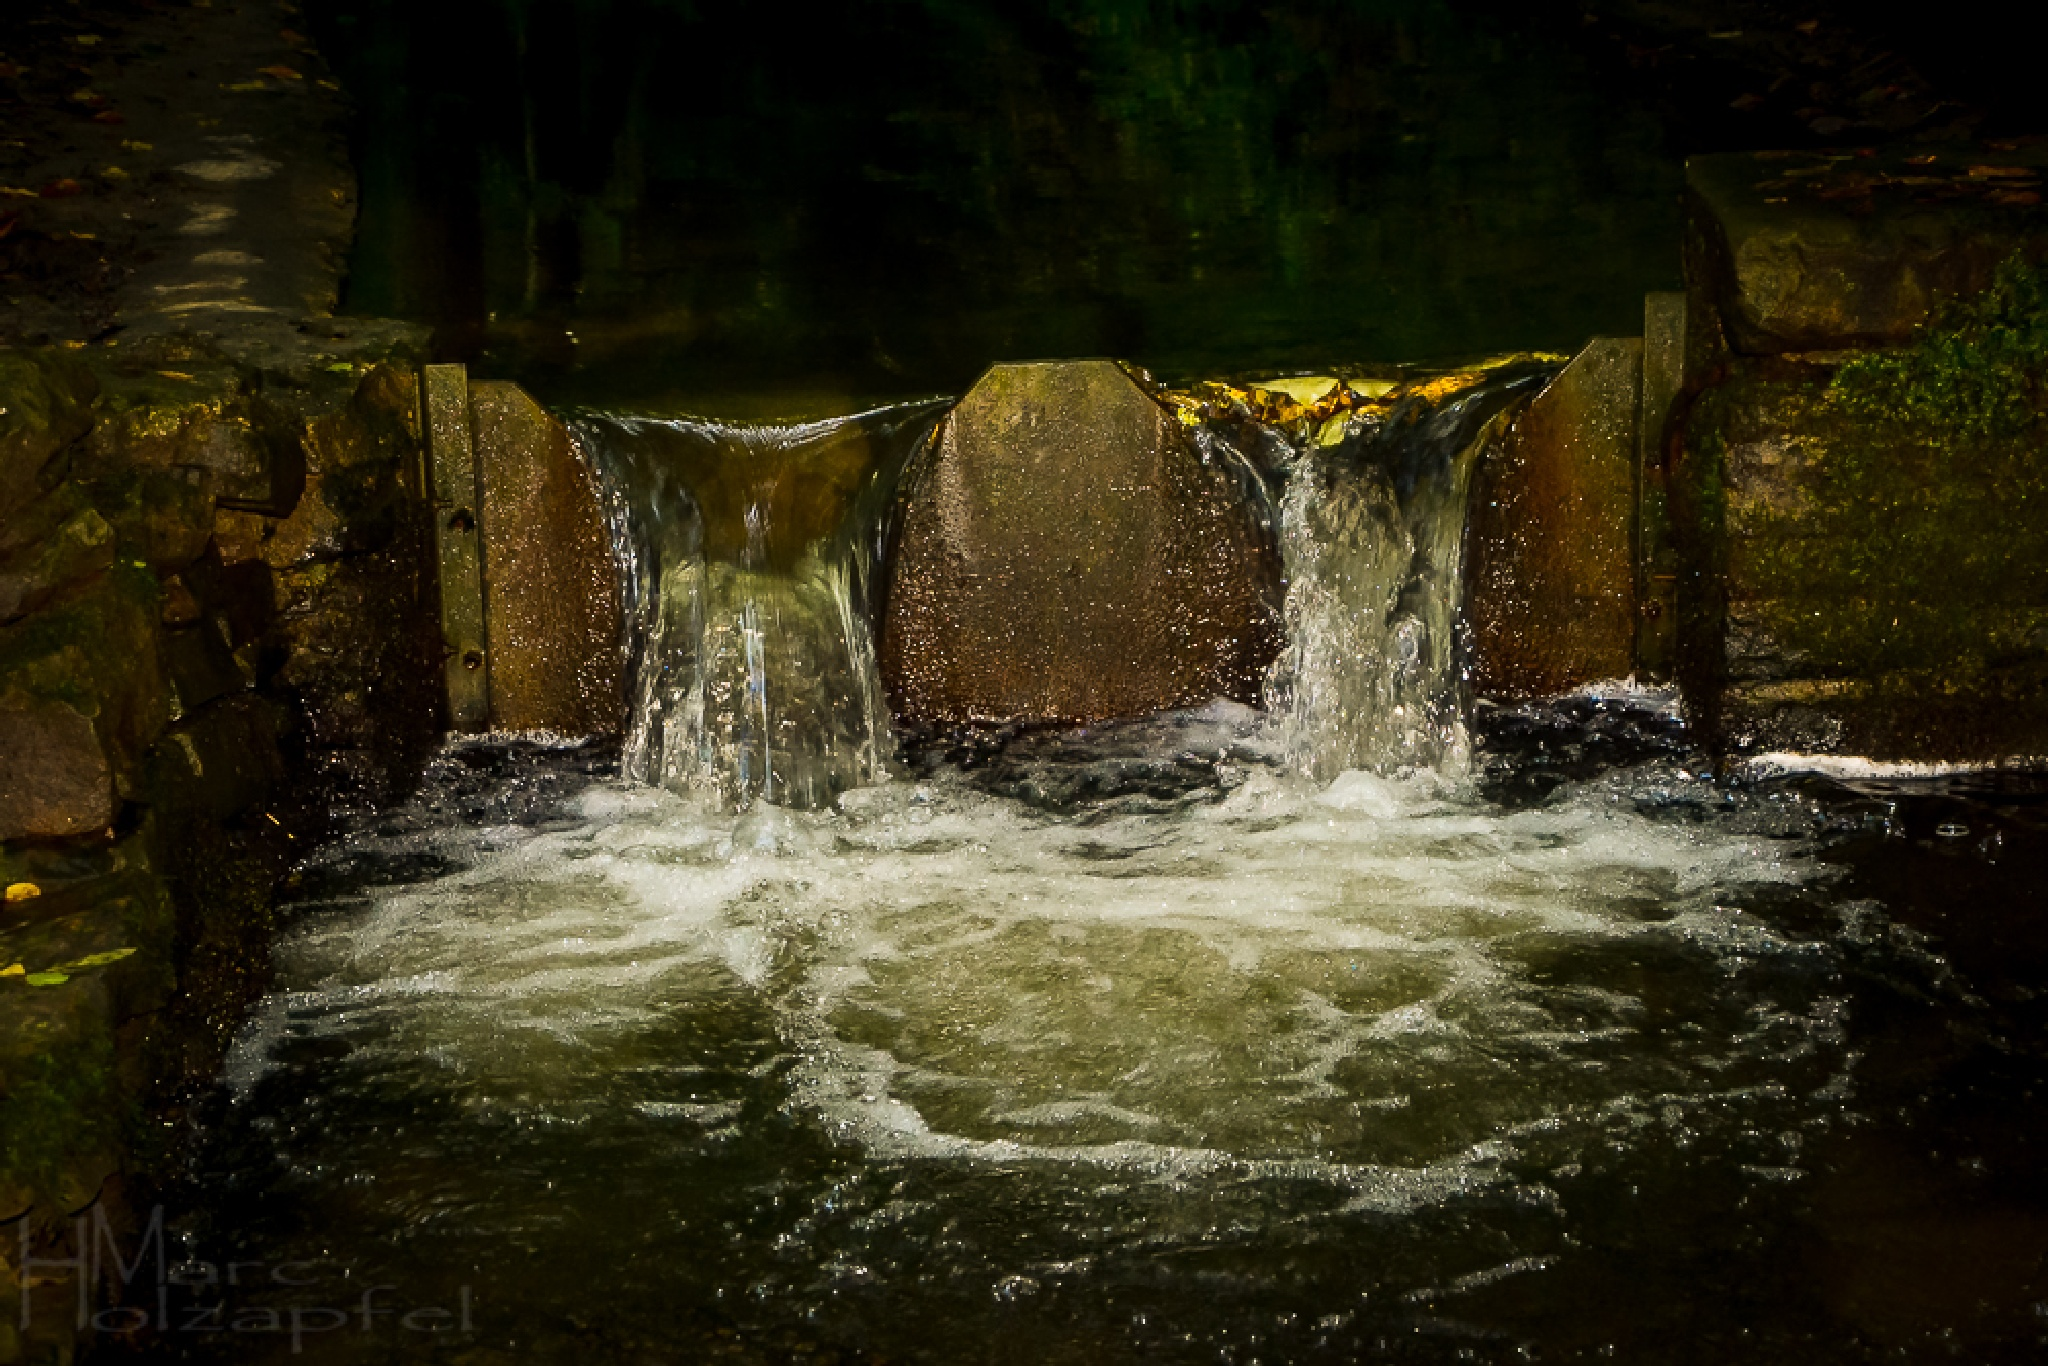 Bachlauf / Watercourse by Marc Holzapfel